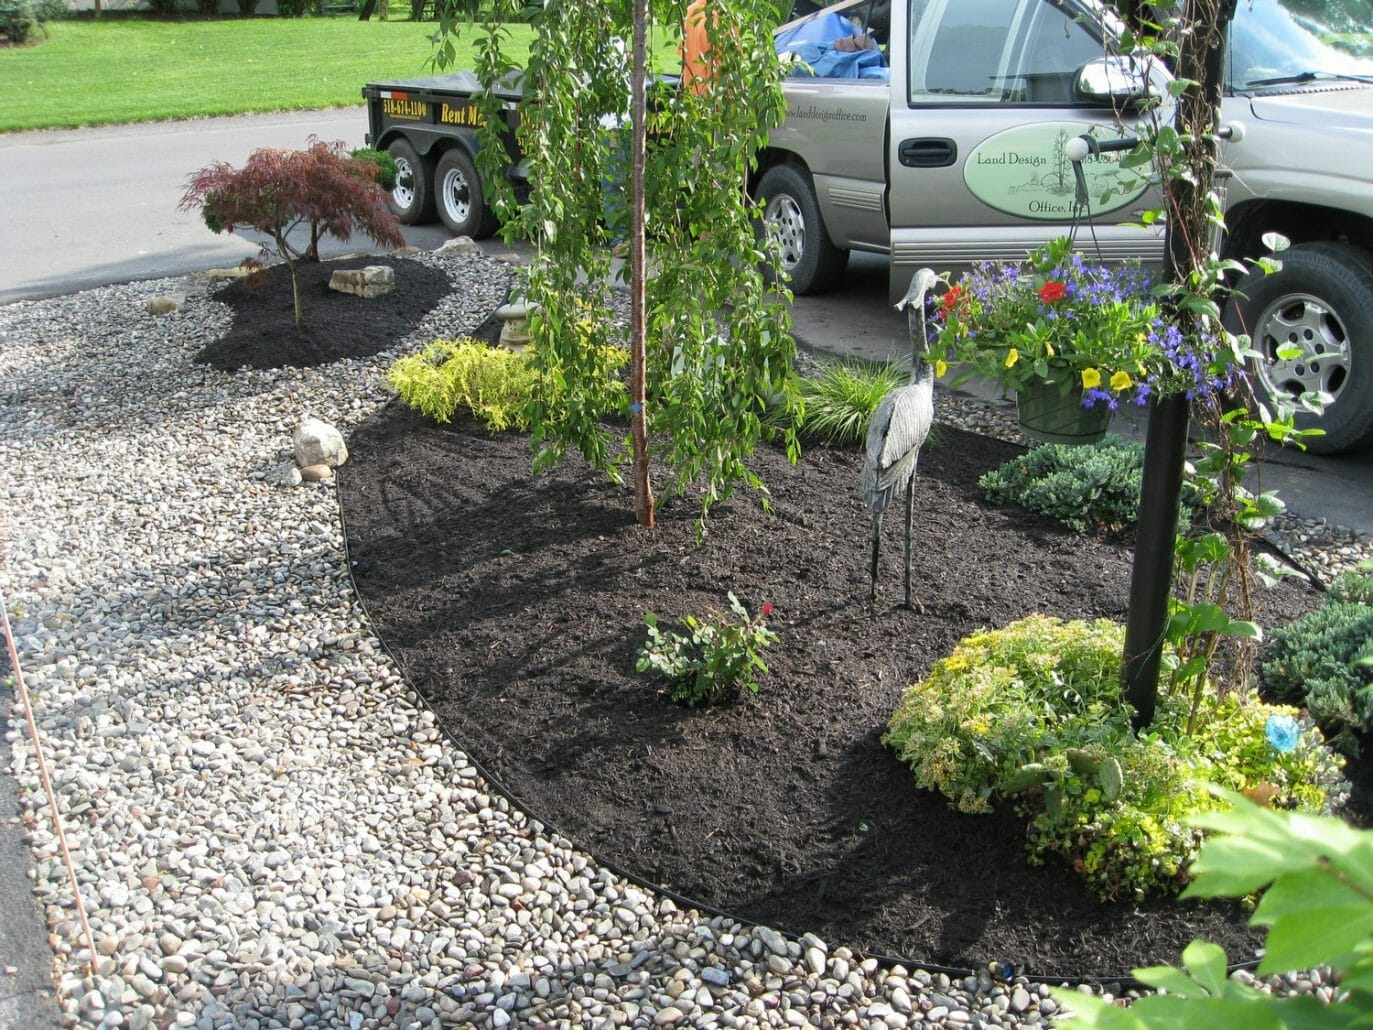 Albany NY landscape project management 1373x1030 - Landscape Plan Installation and Project Management